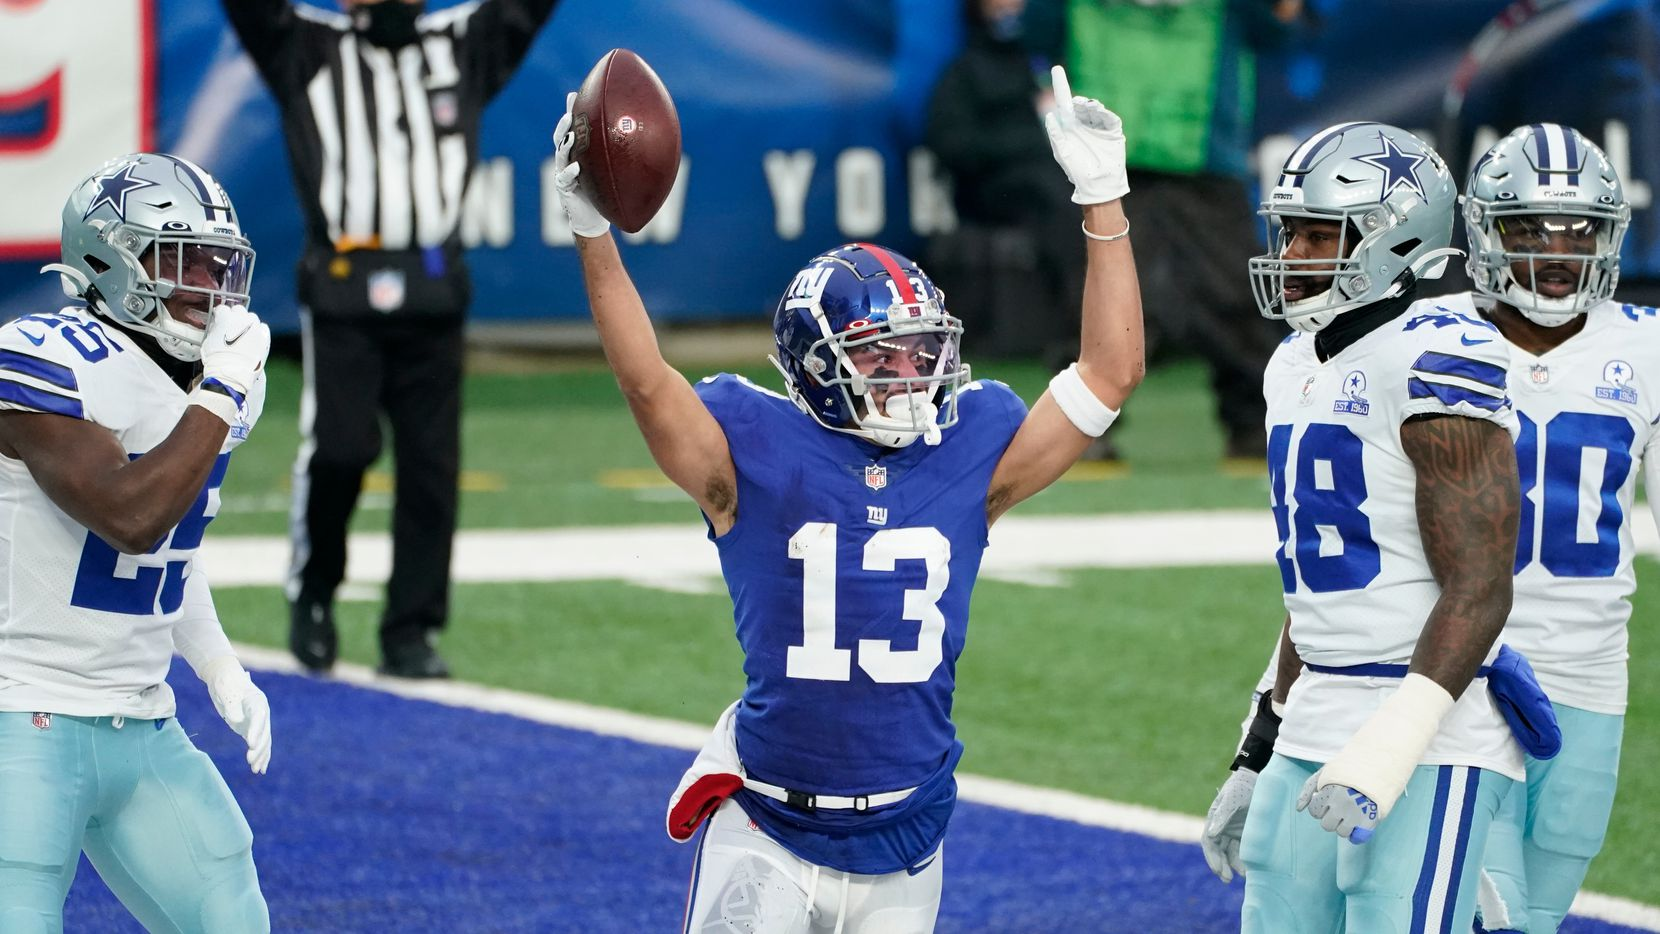 New York Giants' Dante Pettis, center, celebrates his touchdown during the first half of an NFL football game against the Dallas Cowboys, Sunday, Jan. 3, 2021, in East Rutherford, N.J. (AP Photo/Corey Sipkin)